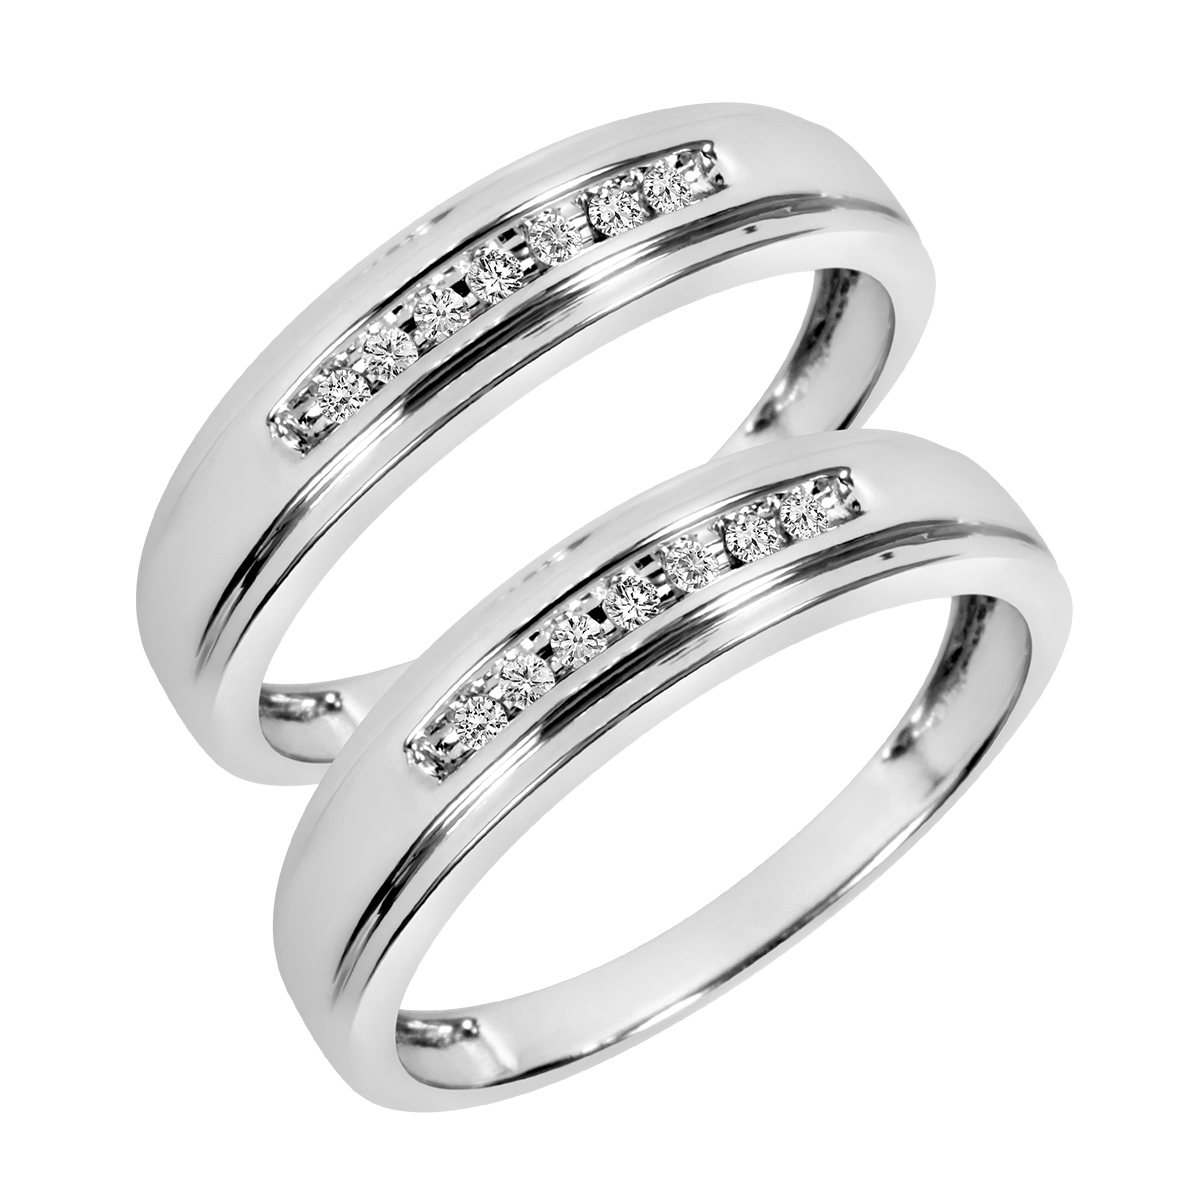 1/6 Carat T.W. Round Cut Mens  Same Sex Wedding Band Set 10K White Gold- Size 8